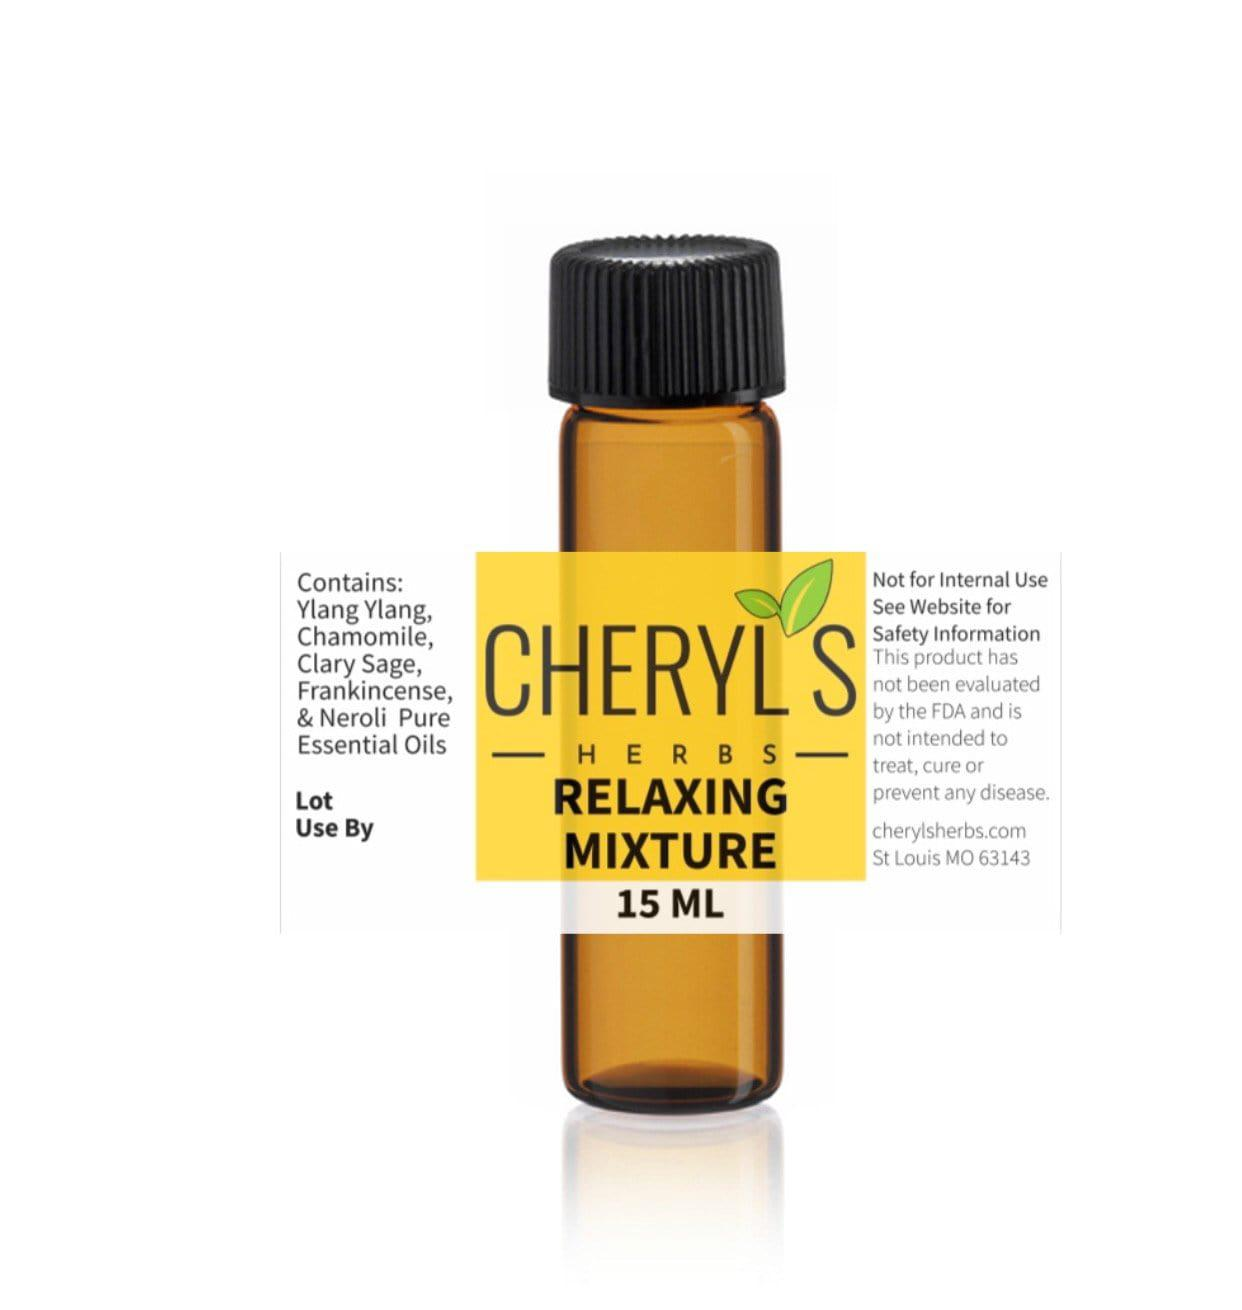 RELAXING MIXTURE - Cheryls Herbs